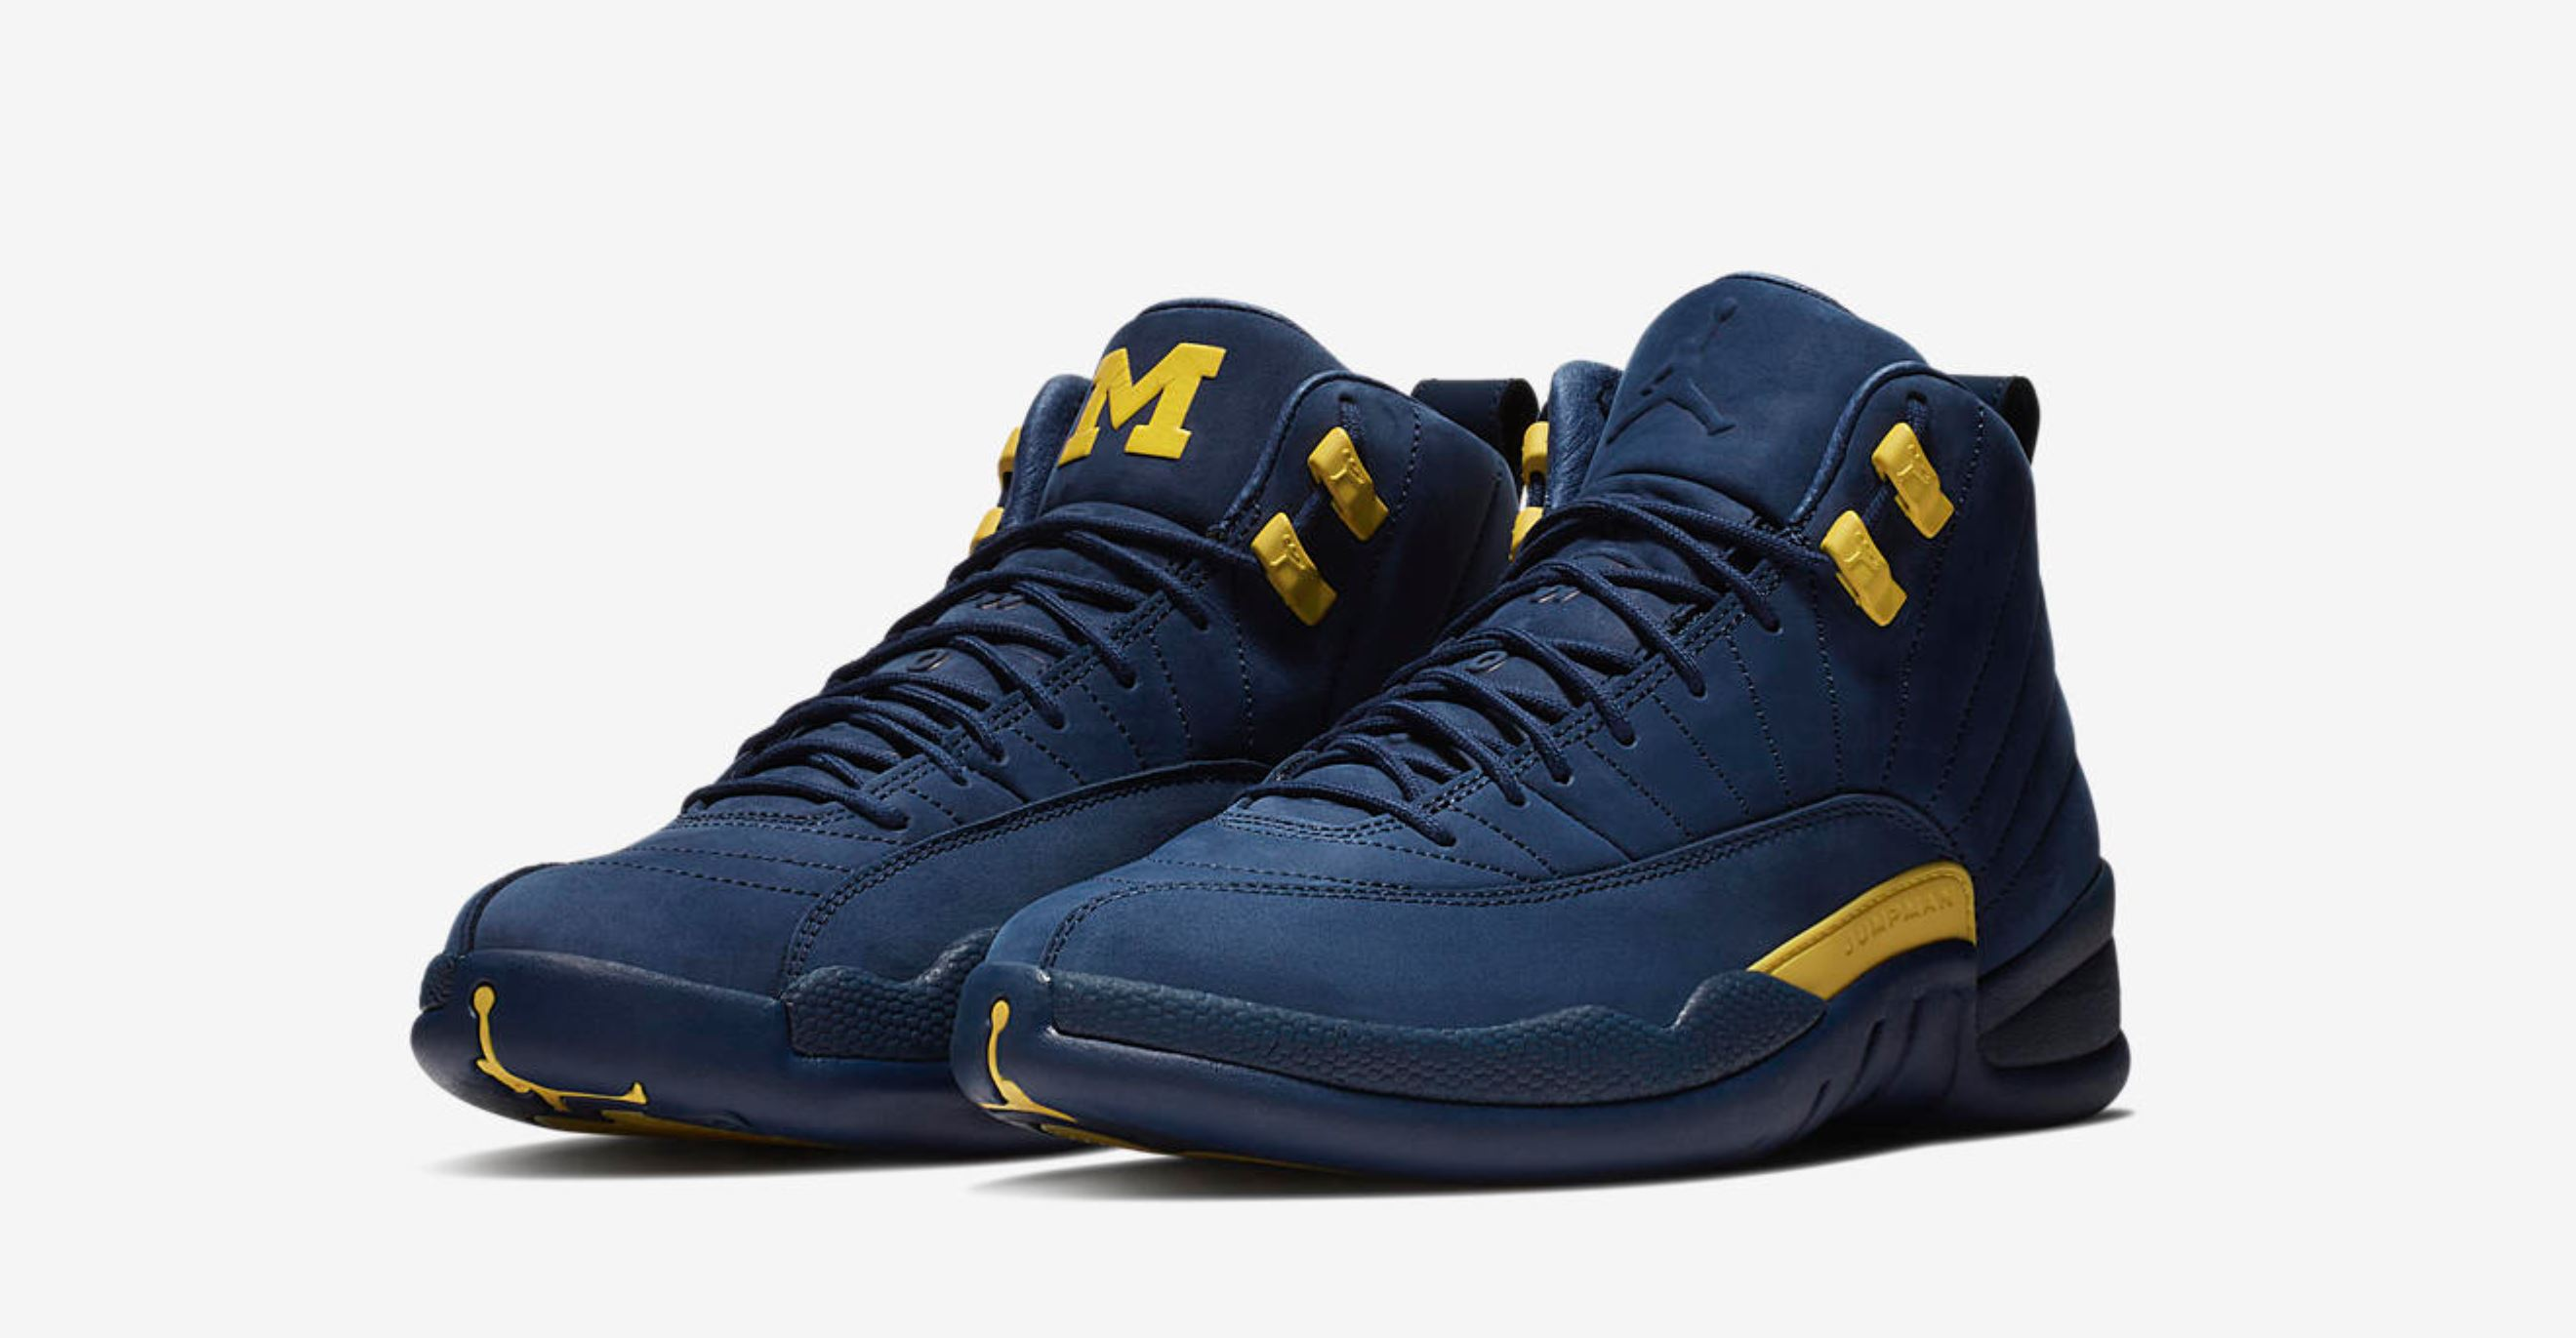 air jordan 12 univerisy of michigan